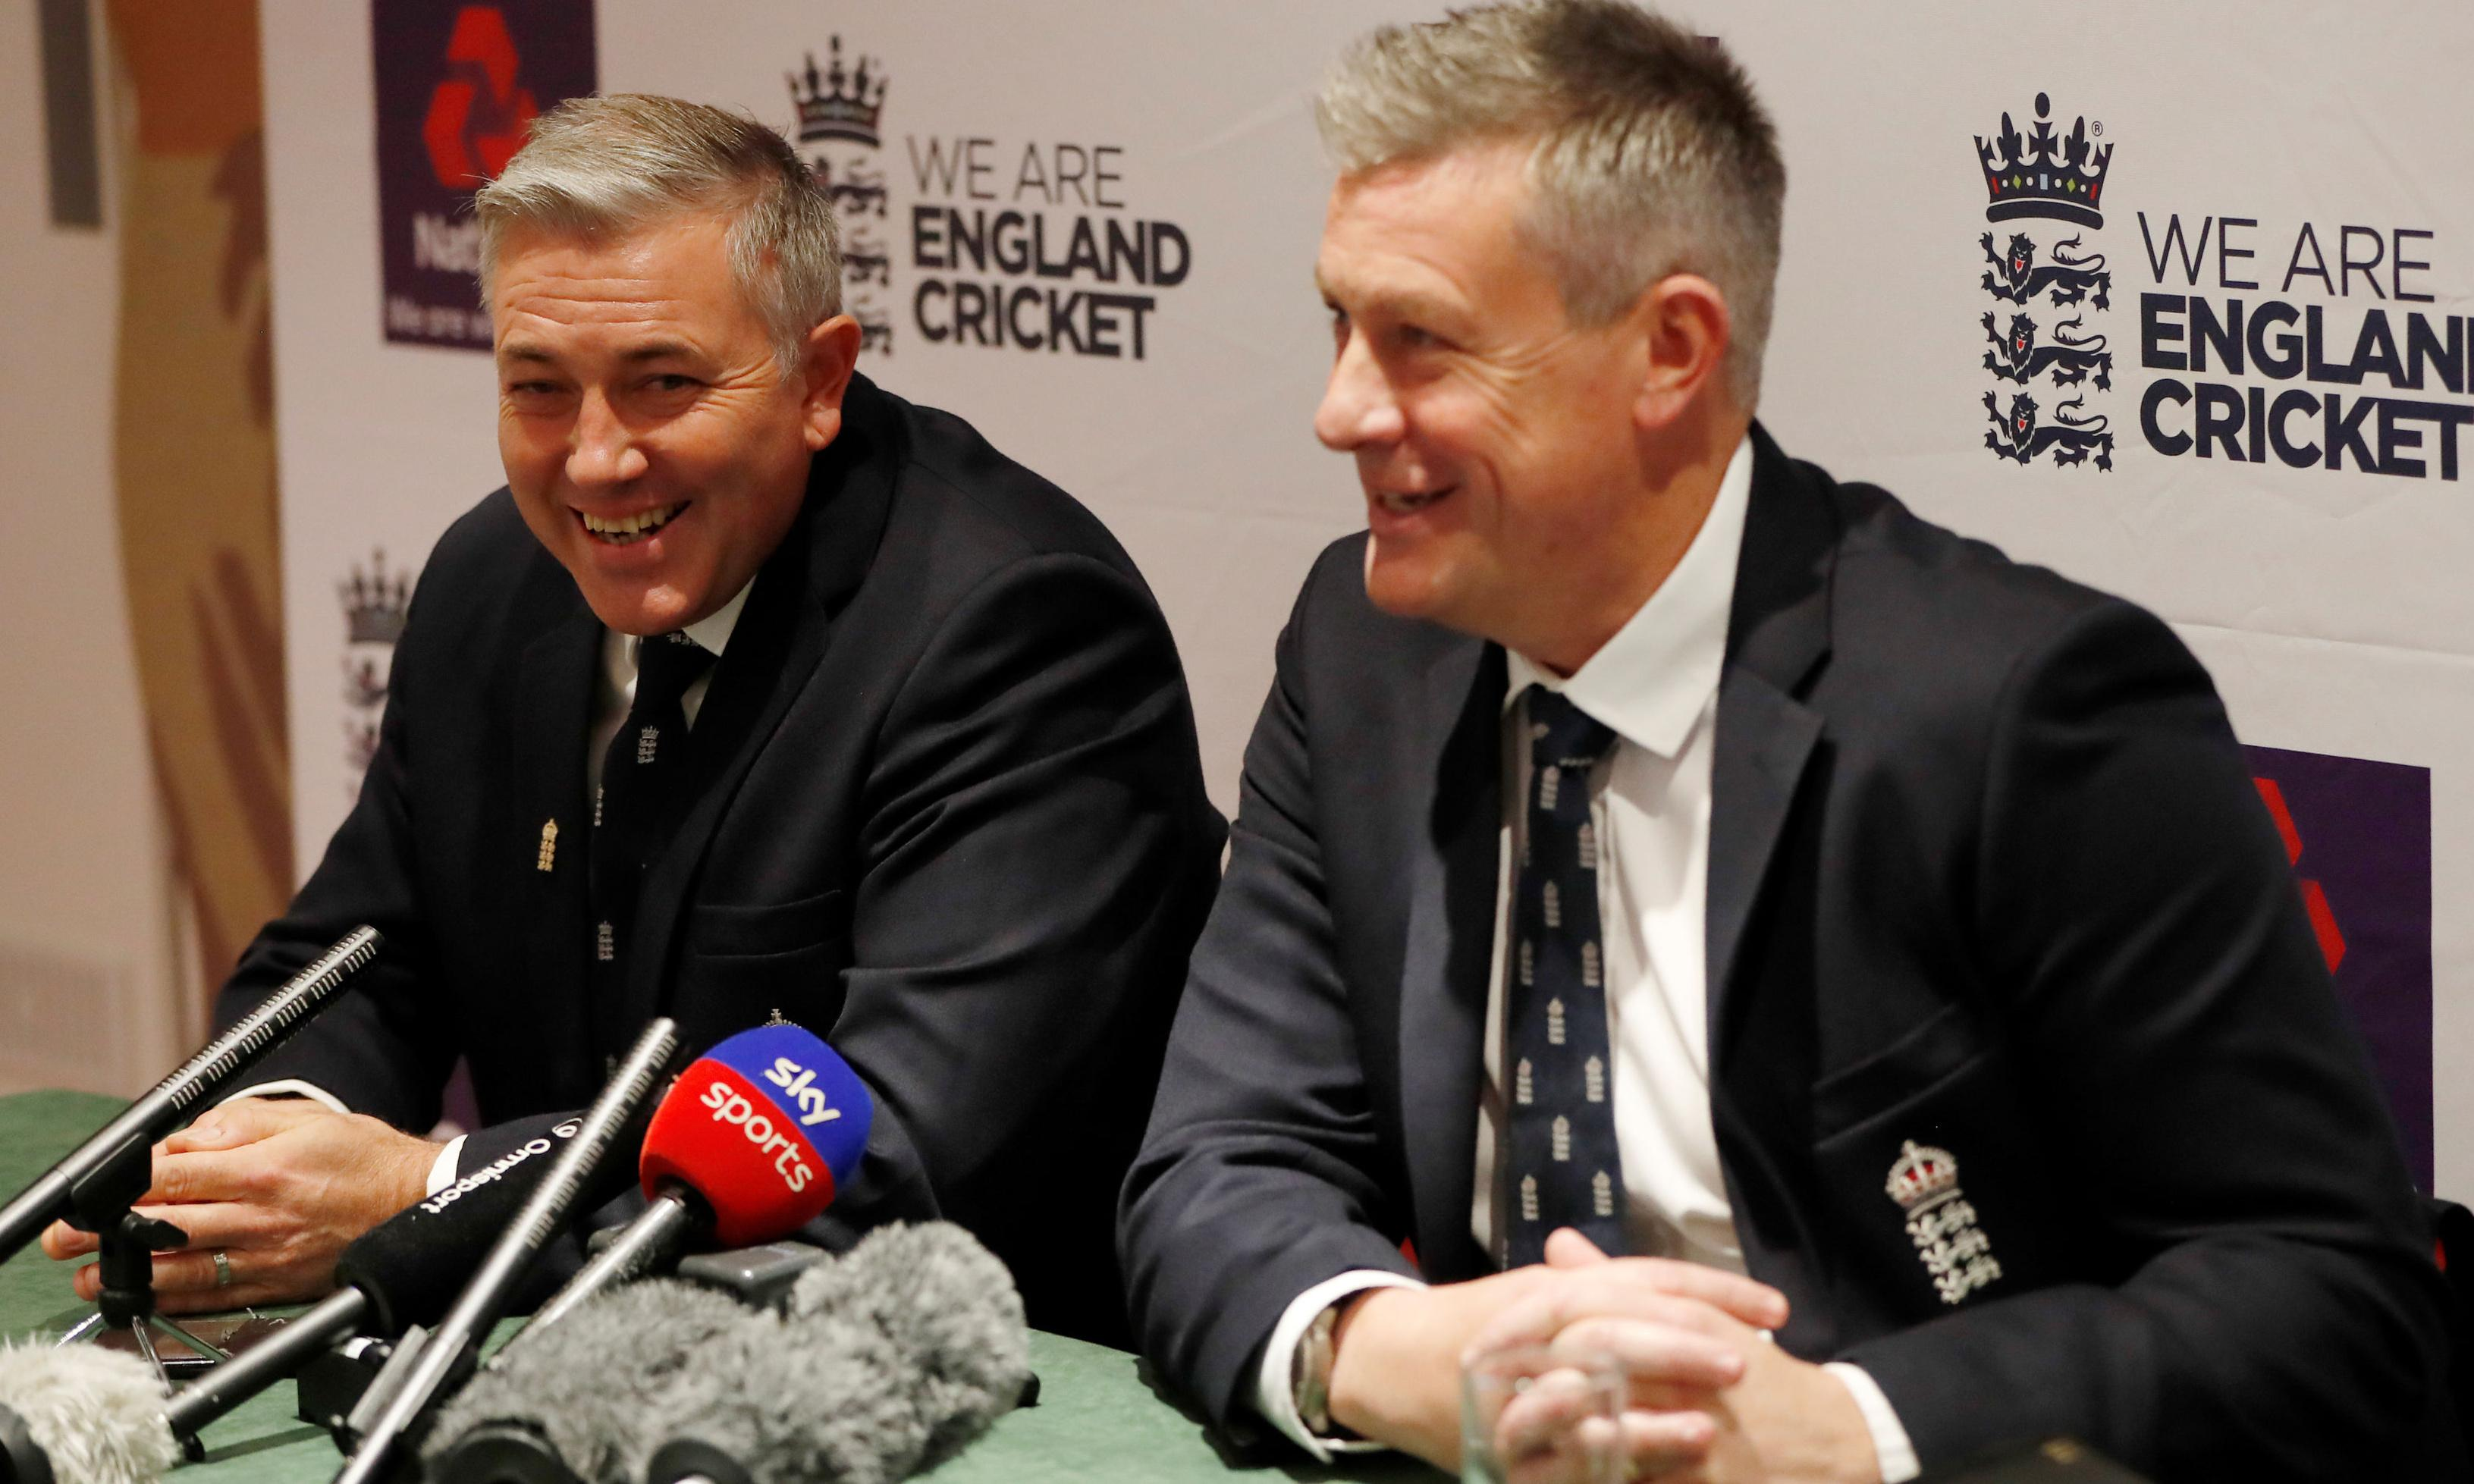 Chris Silverwood's England brief is to reinvent Root as batsman and captain